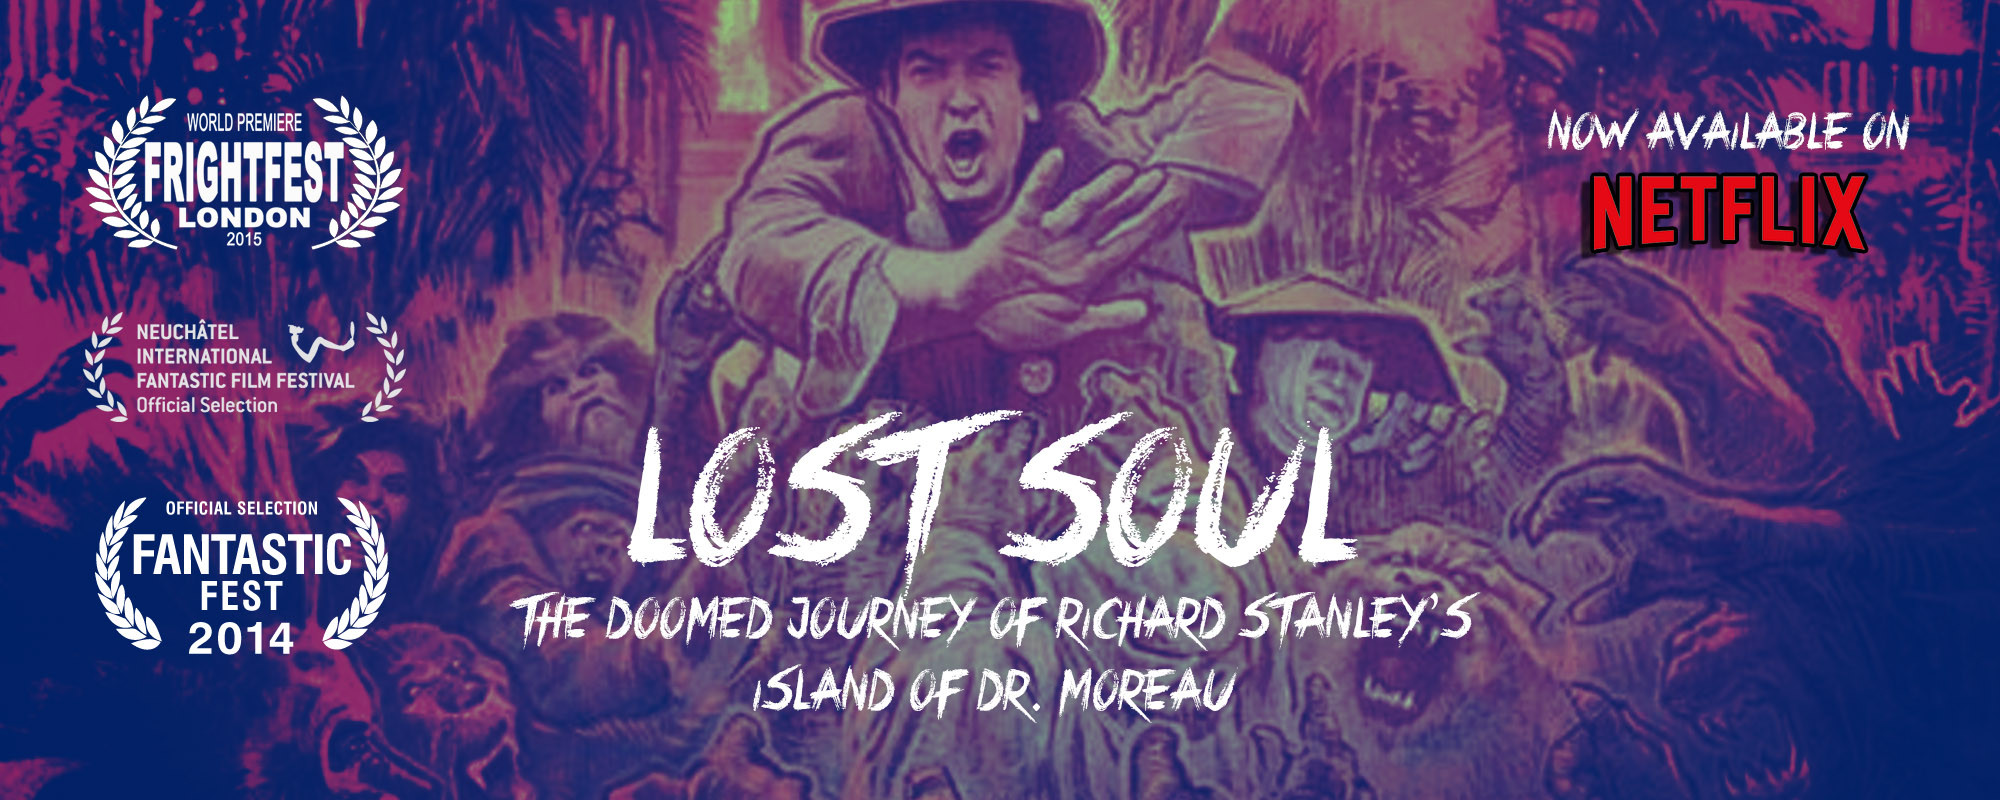 lost-soul-gregory-kunz